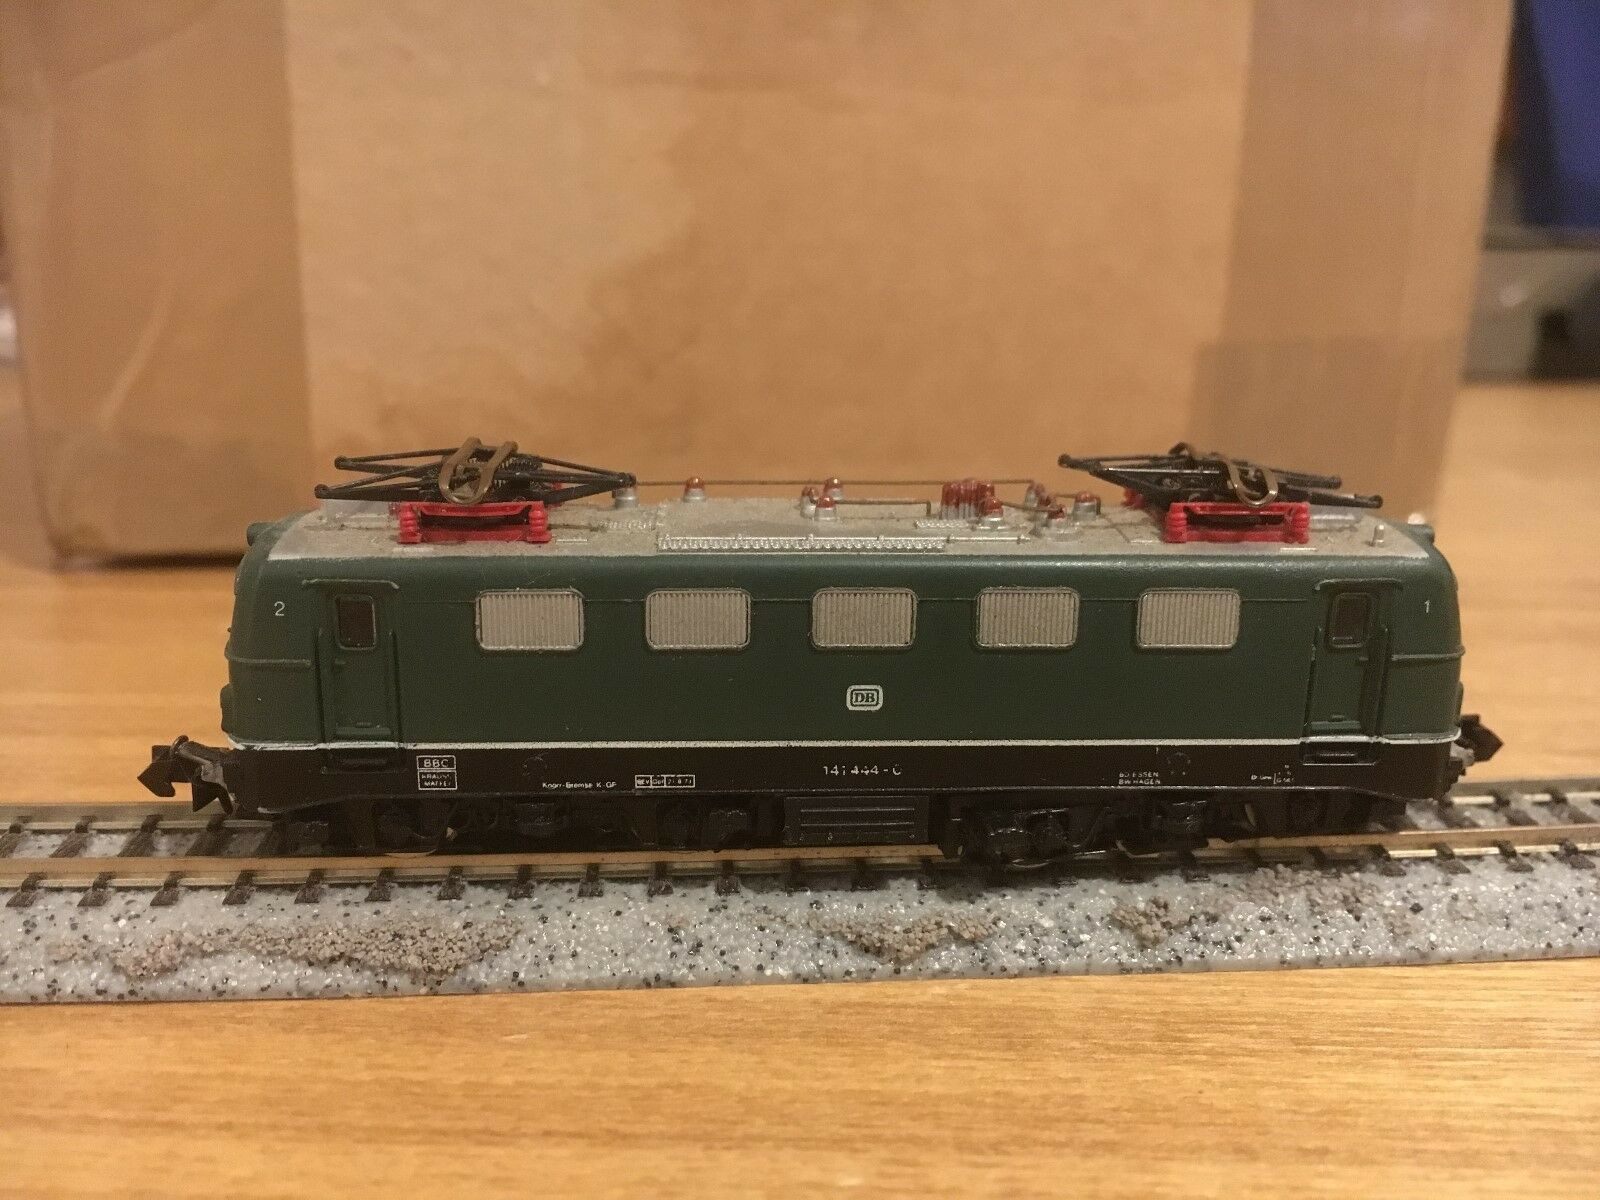 Arnold 2321 N Gauge Spur E-lok 141 444-0 Dark green DB Boxed VGC